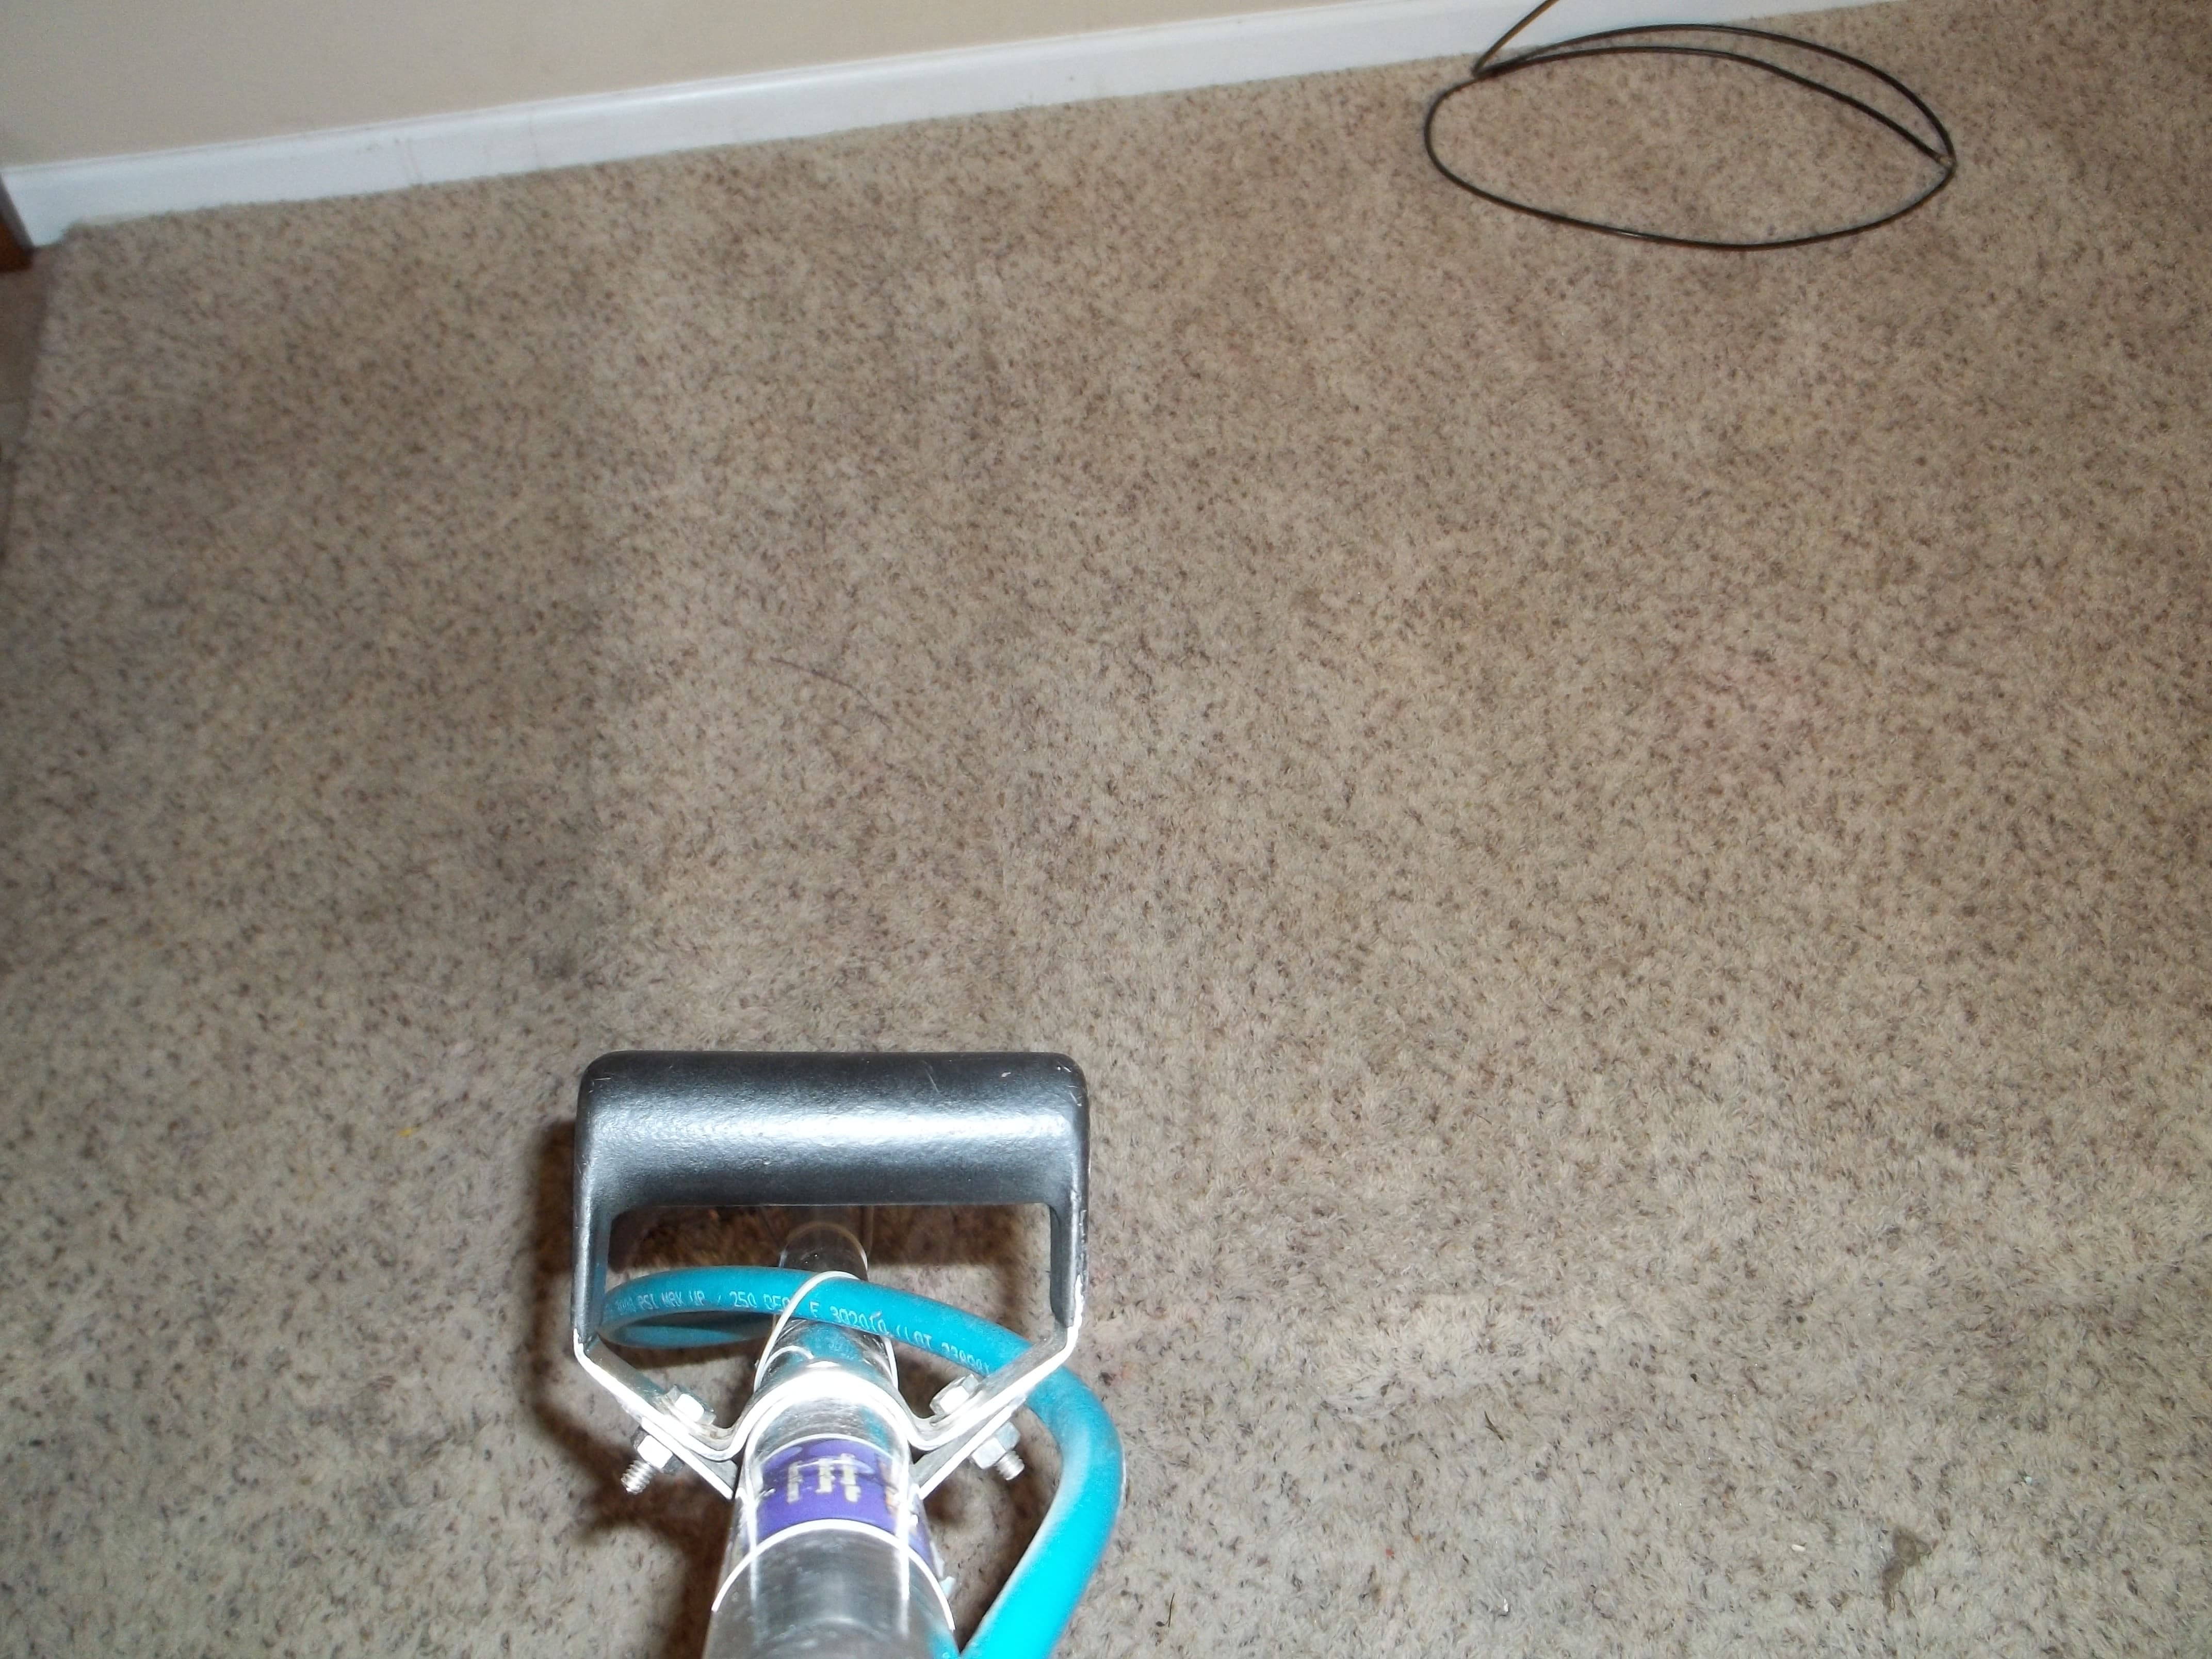 carpeting-cleaning-tan-Team-Clean-Colorado-Residue-Free-Carpet-Cleaning-Loveland